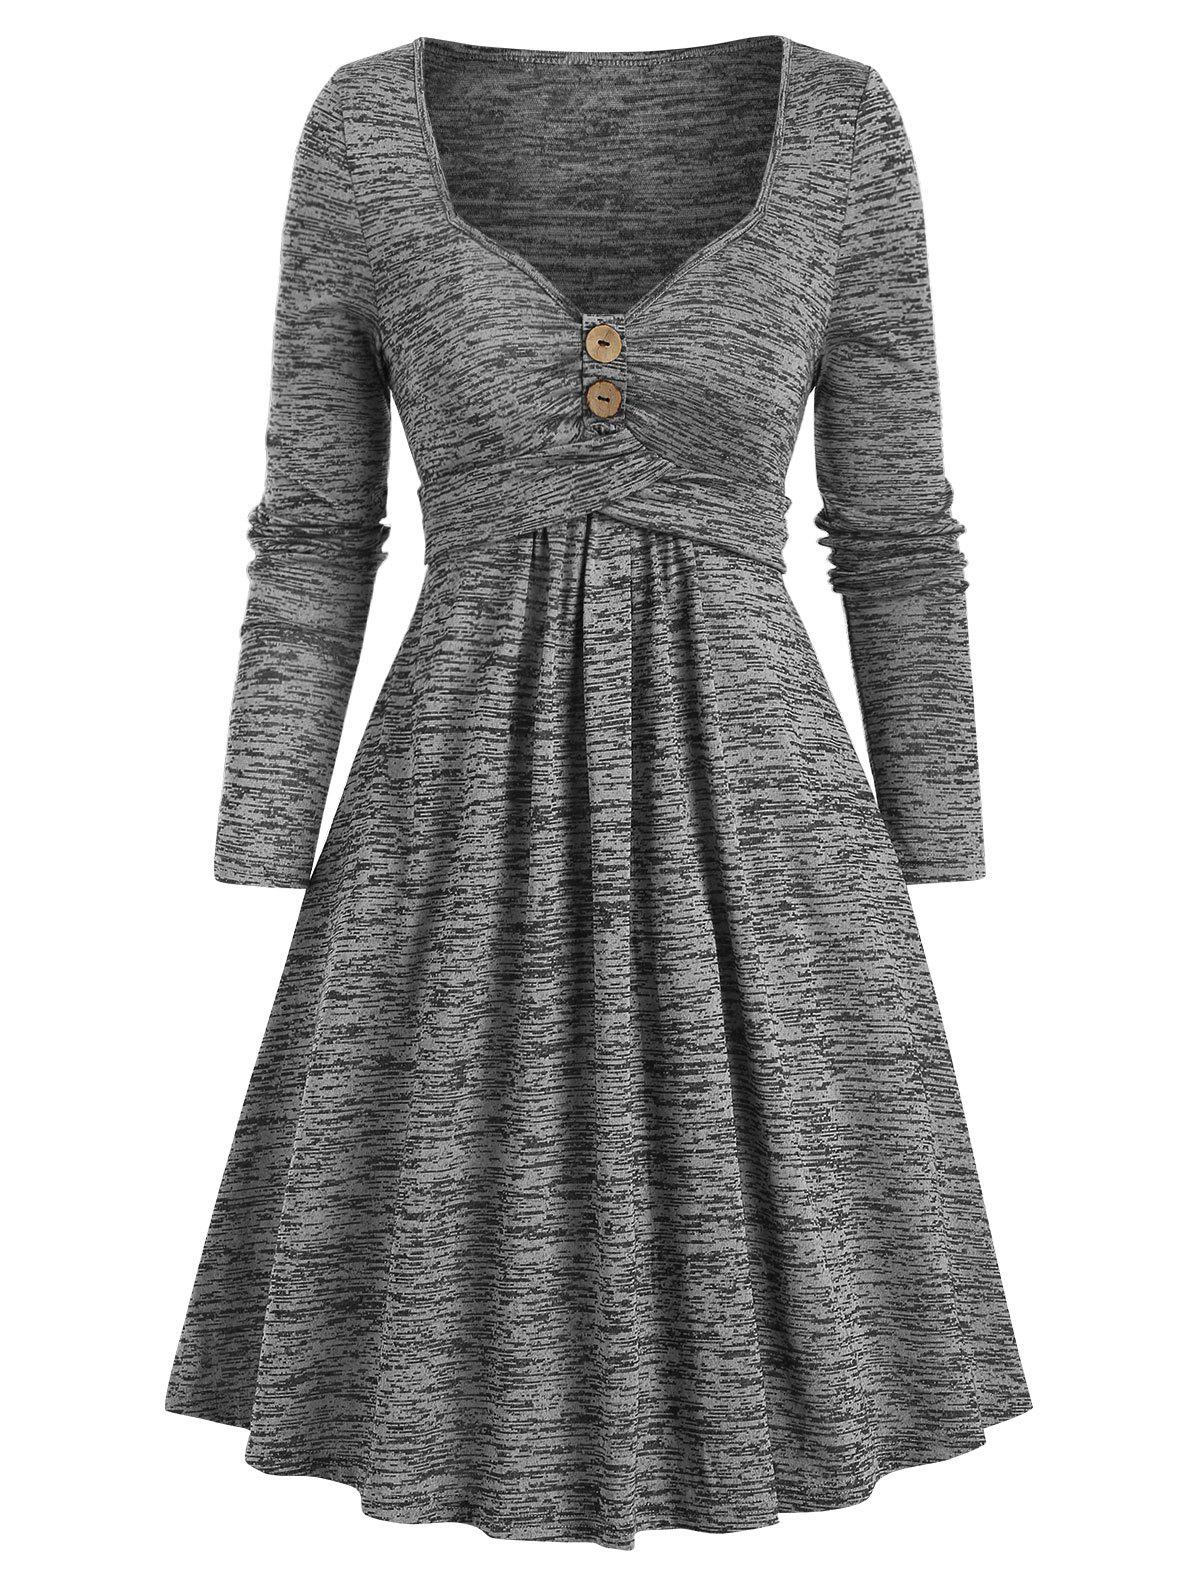 Chic Space Dye Crisscross Mini A Line Dress